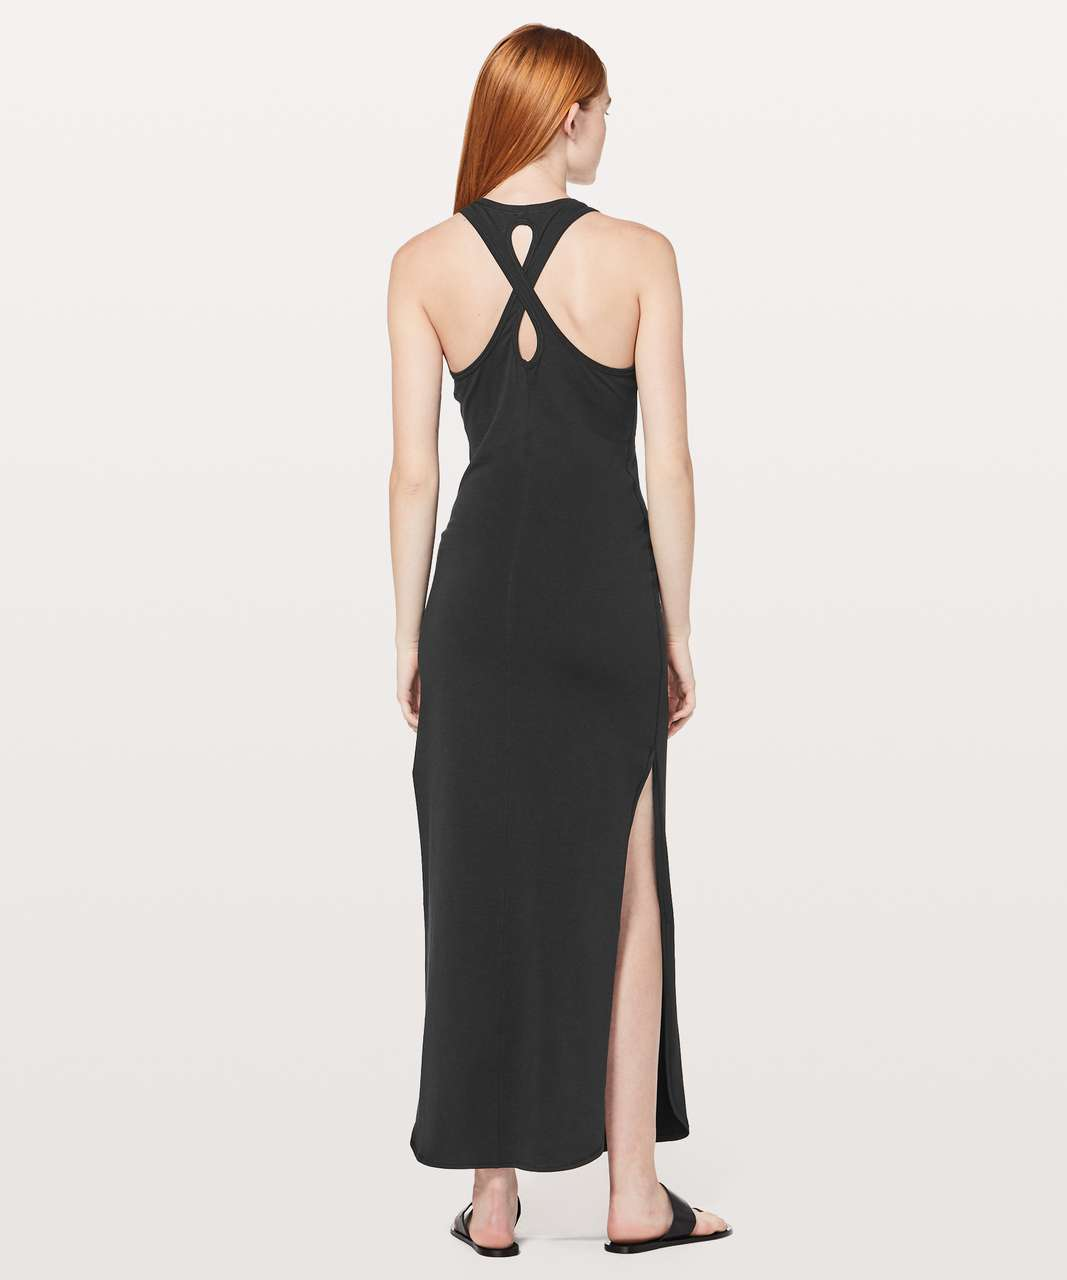 Lululemon Restore & Revitalize Dress - Black